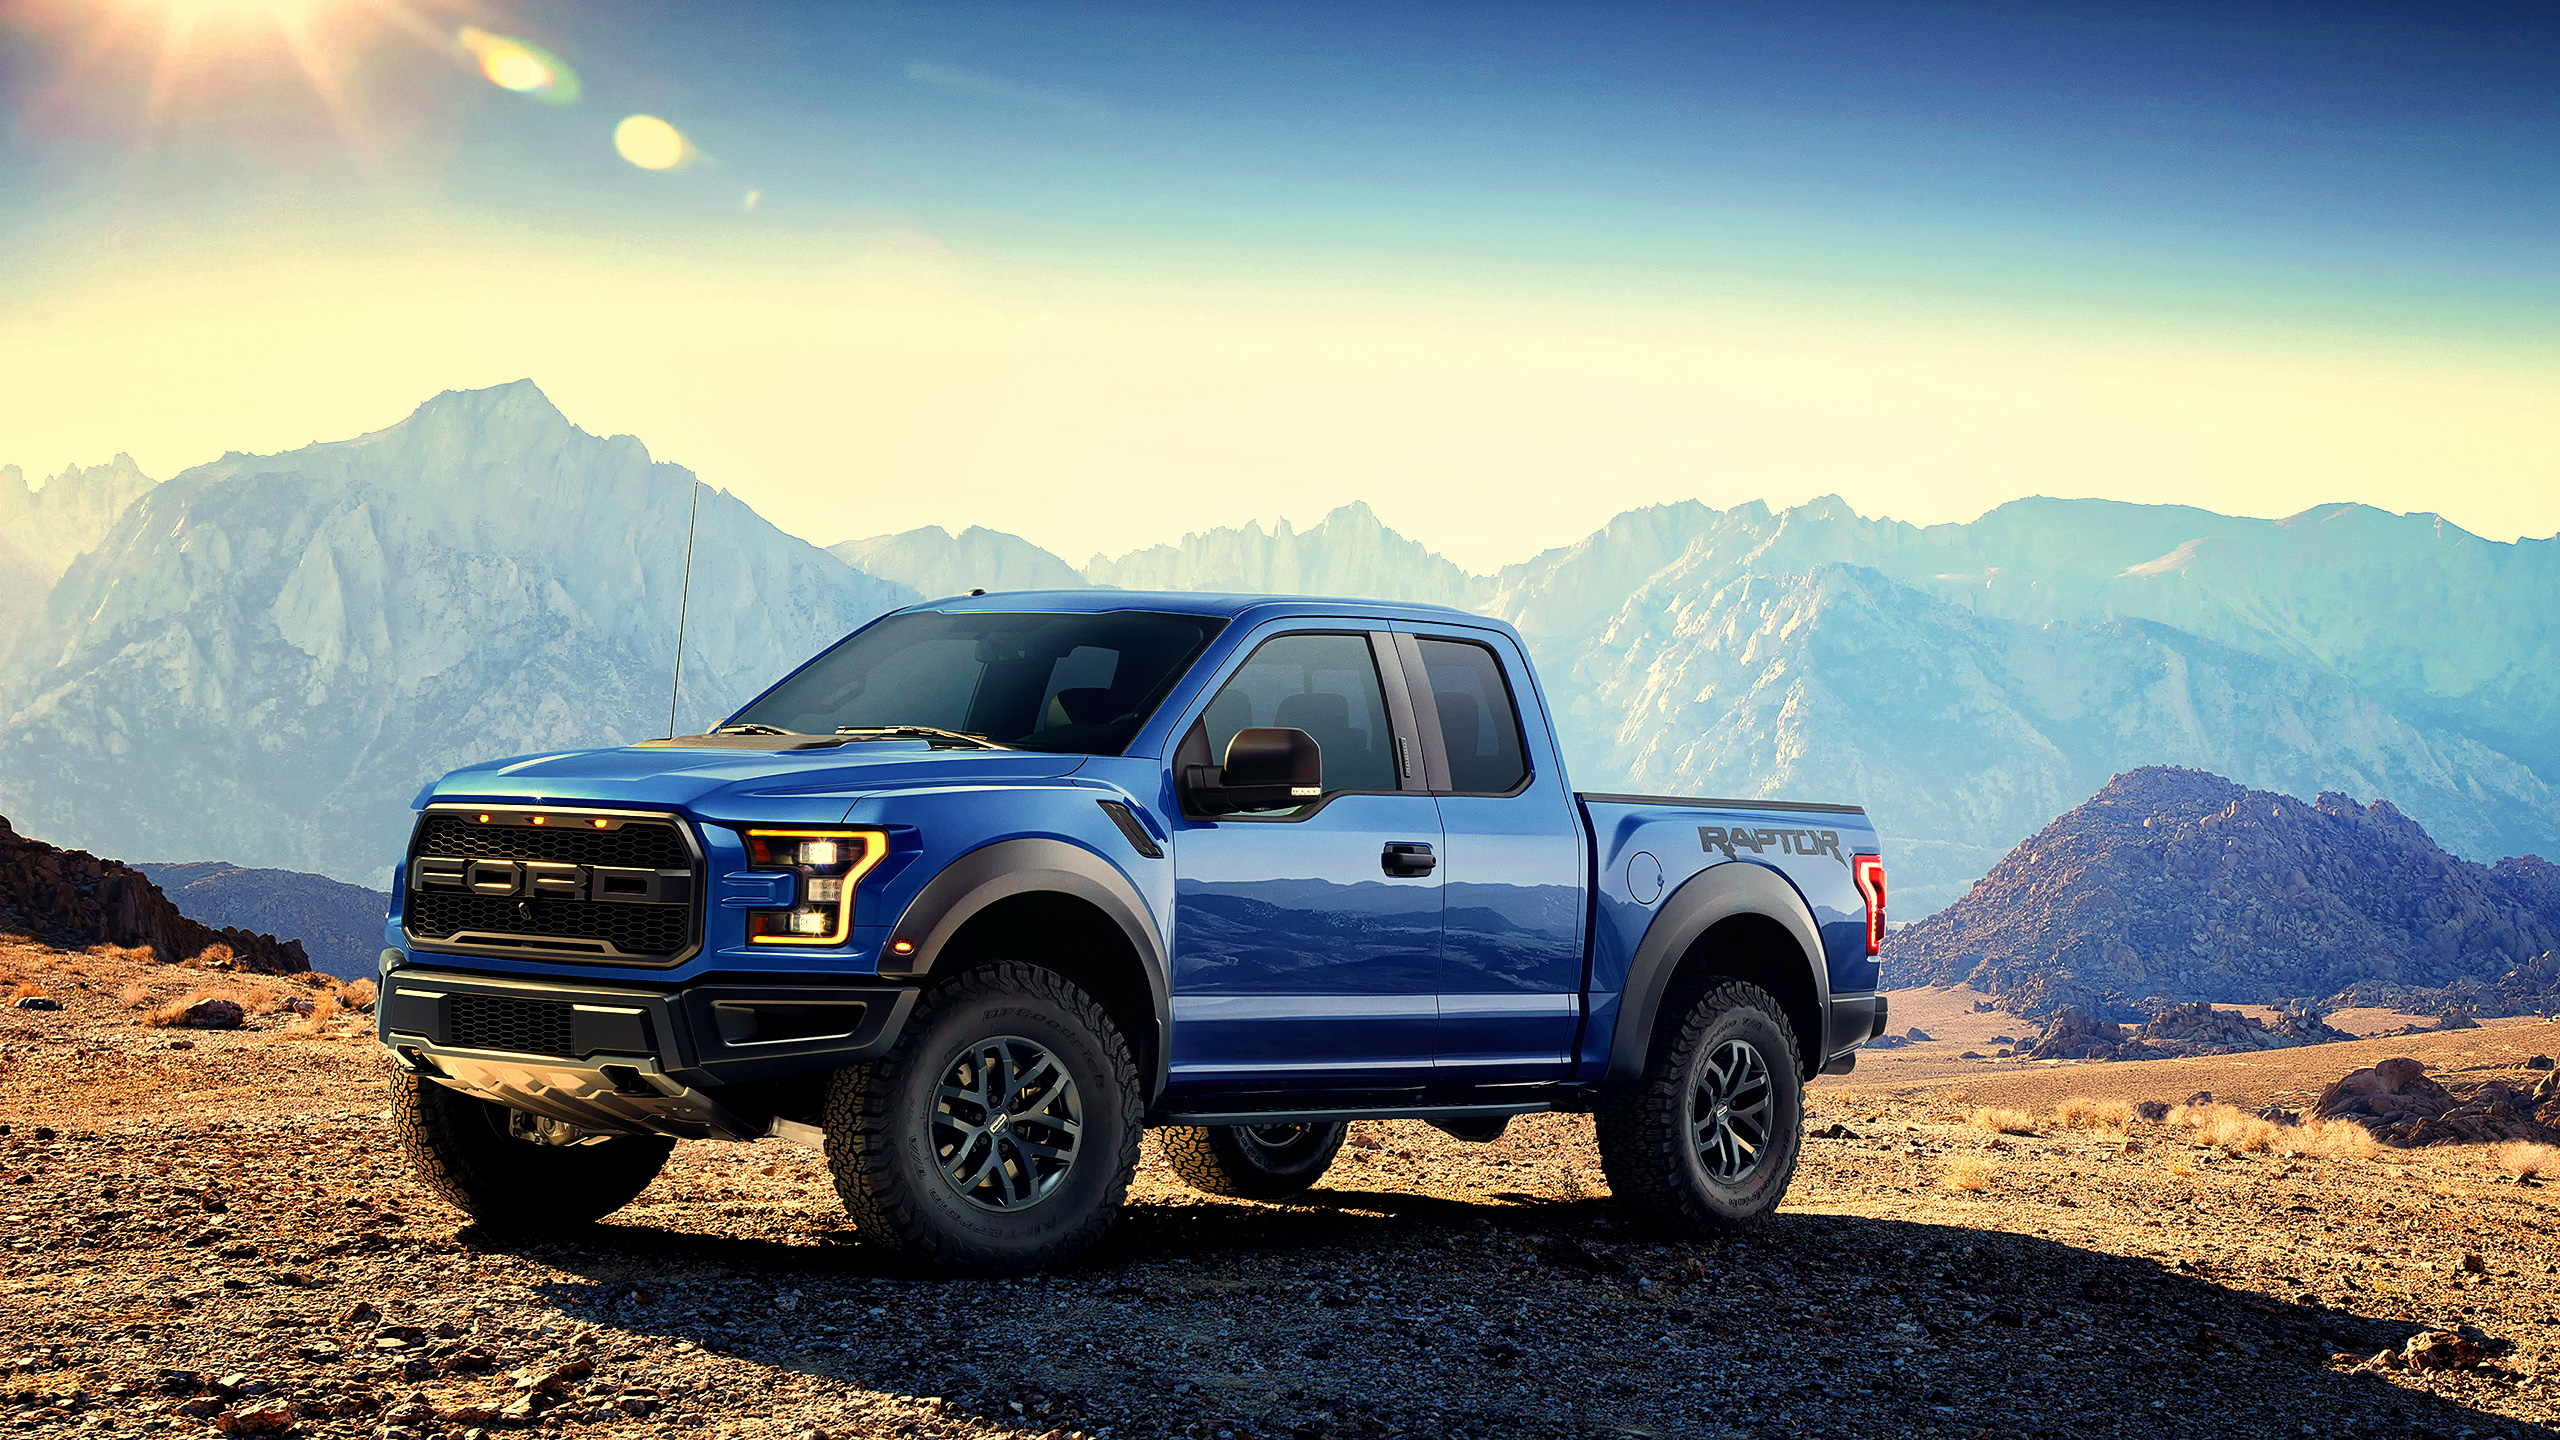 2017 Ford F 150 Svt Raptor Wallpaper Hd Car Wallpapers Id 7111